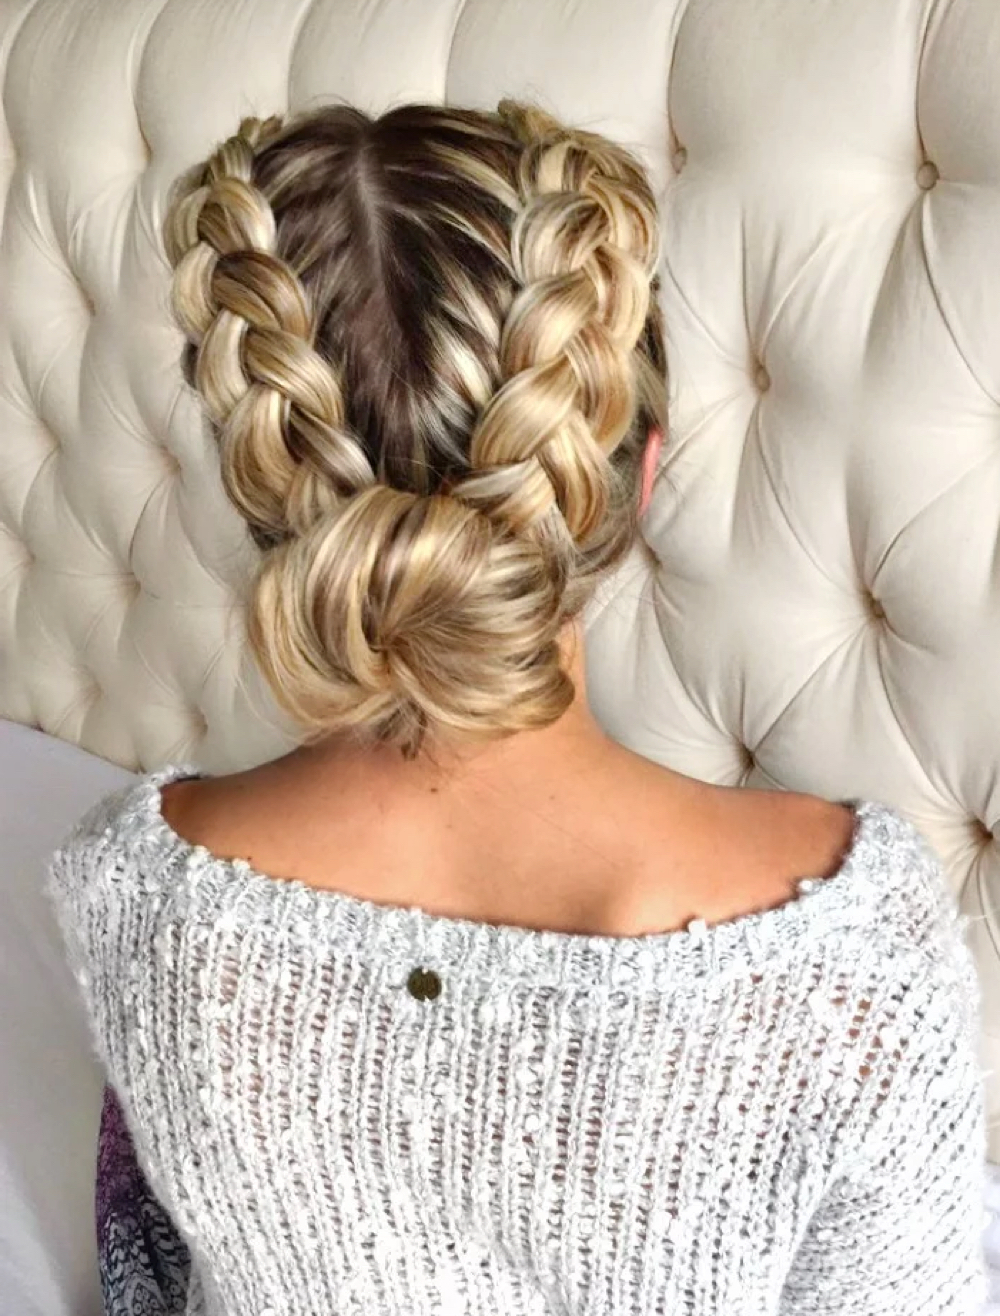 Best And Newest Blonde Asymmetrical Pigtails Braid Hairstyles Pertaining To 29 Gorgeous Braided Updo Ideas For (View 17 of 20)